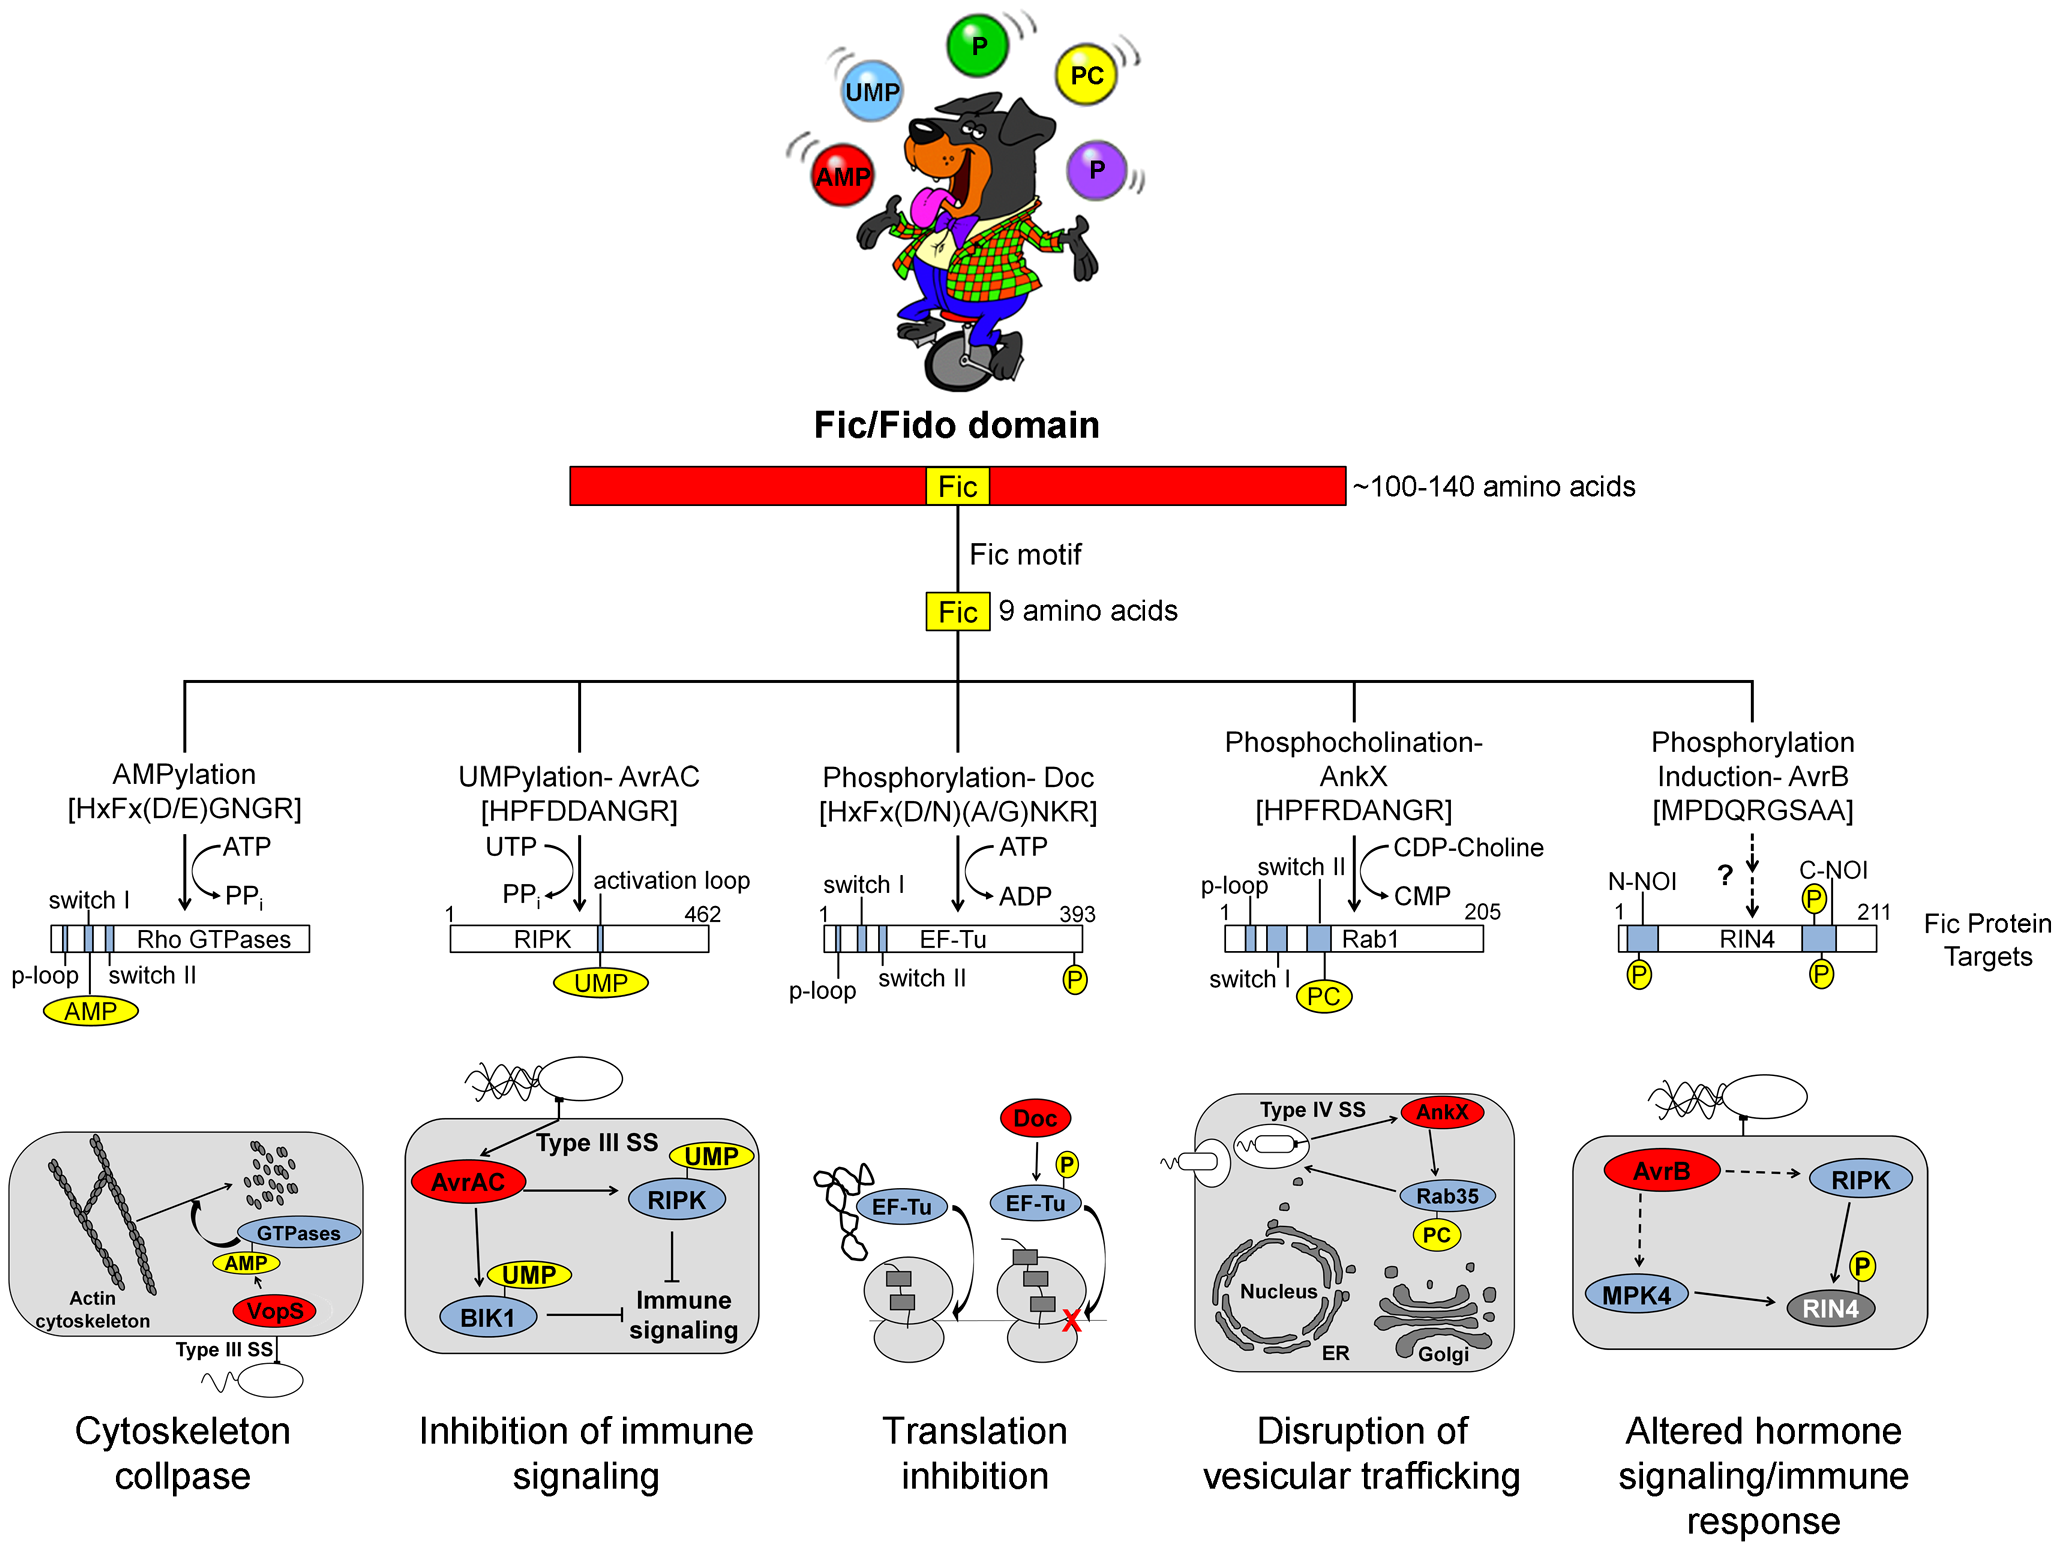 Overview of Fic domain proteins, their targets, and their roles in bacterial virulence.